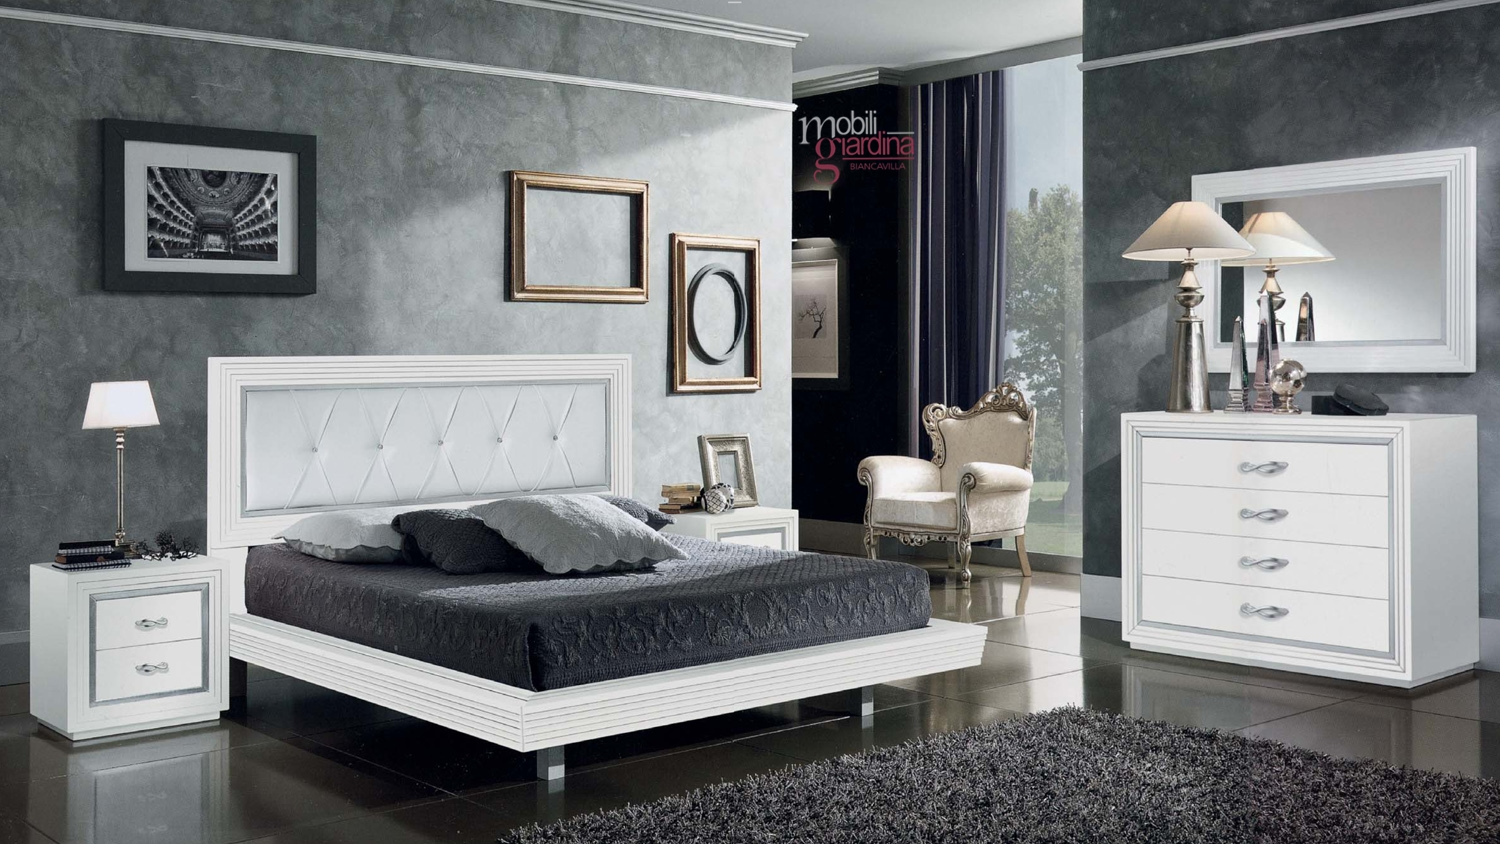 http://www.sumisuragroup.com/uploaded/camere_classiche_17.jpg